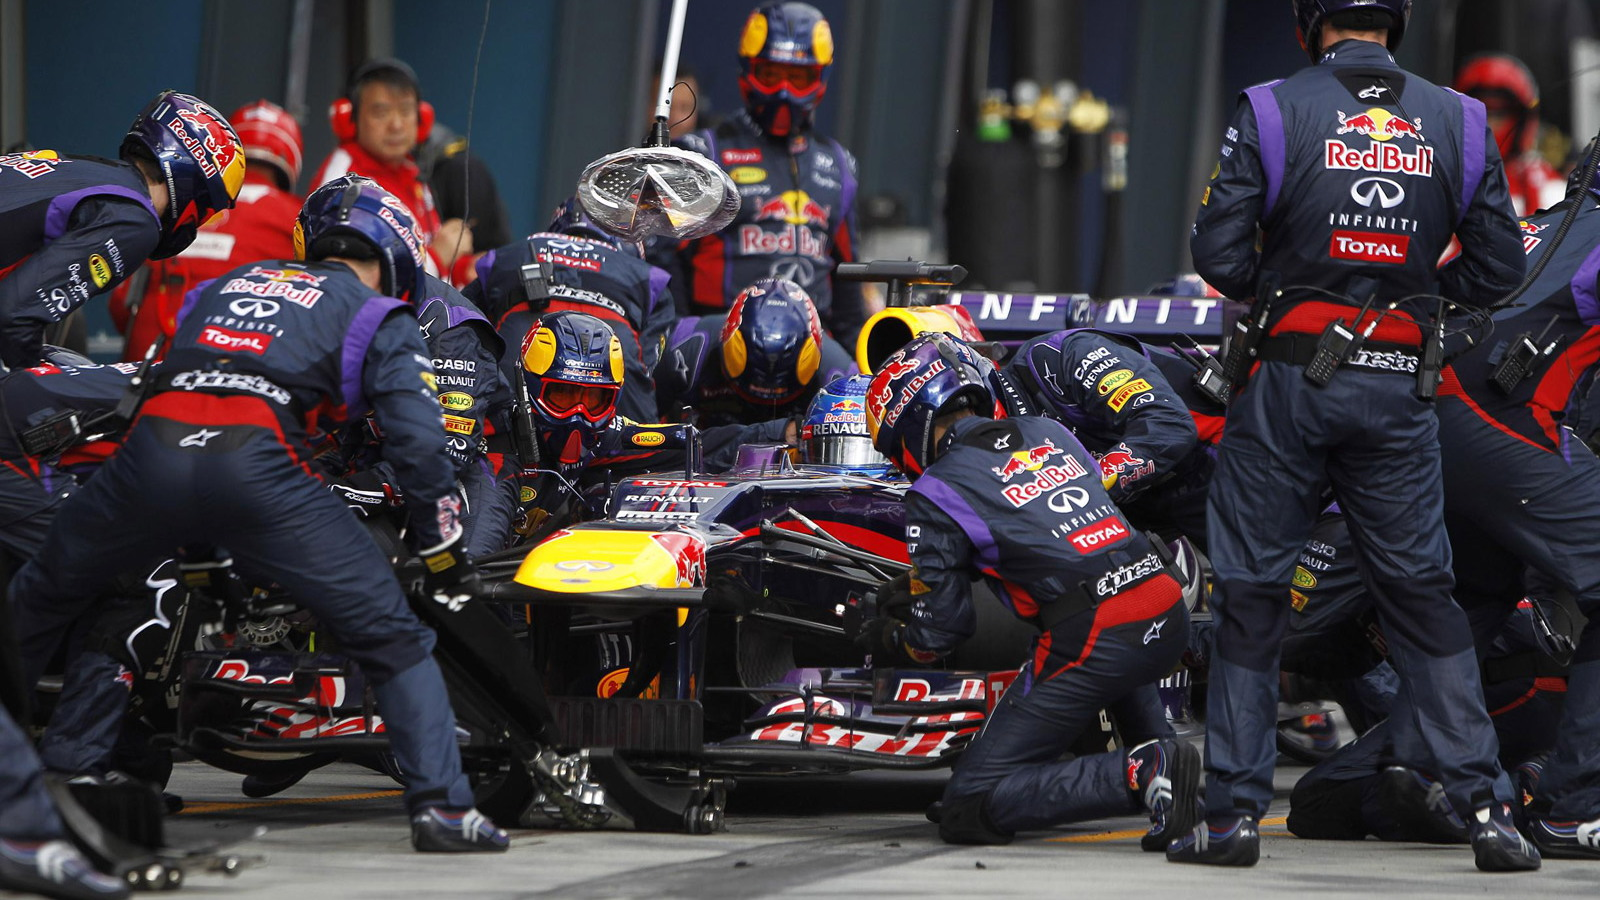 The Red Bull Racing Formula One team executes a pit stop